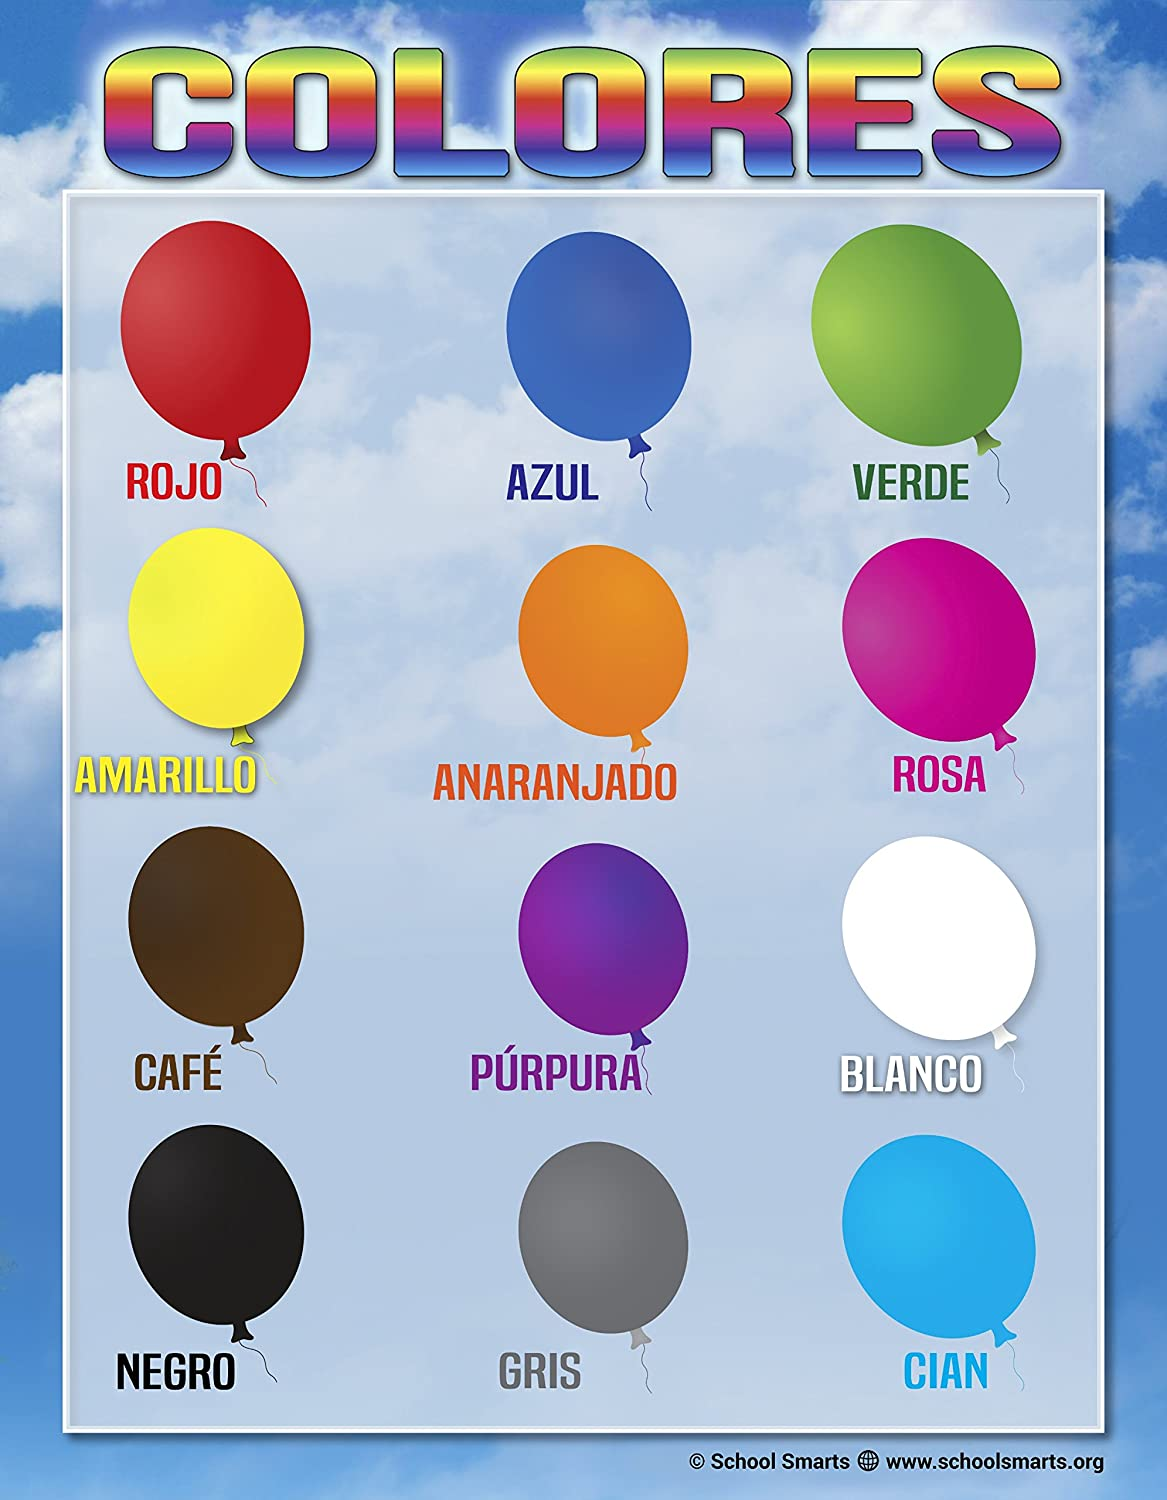 Spanish Colors Chart by School Smarts 12 Bold Colors ●Fully Laminated Durable Material Rolled for Protection and Sealed in a Protective Poster Sleeve.